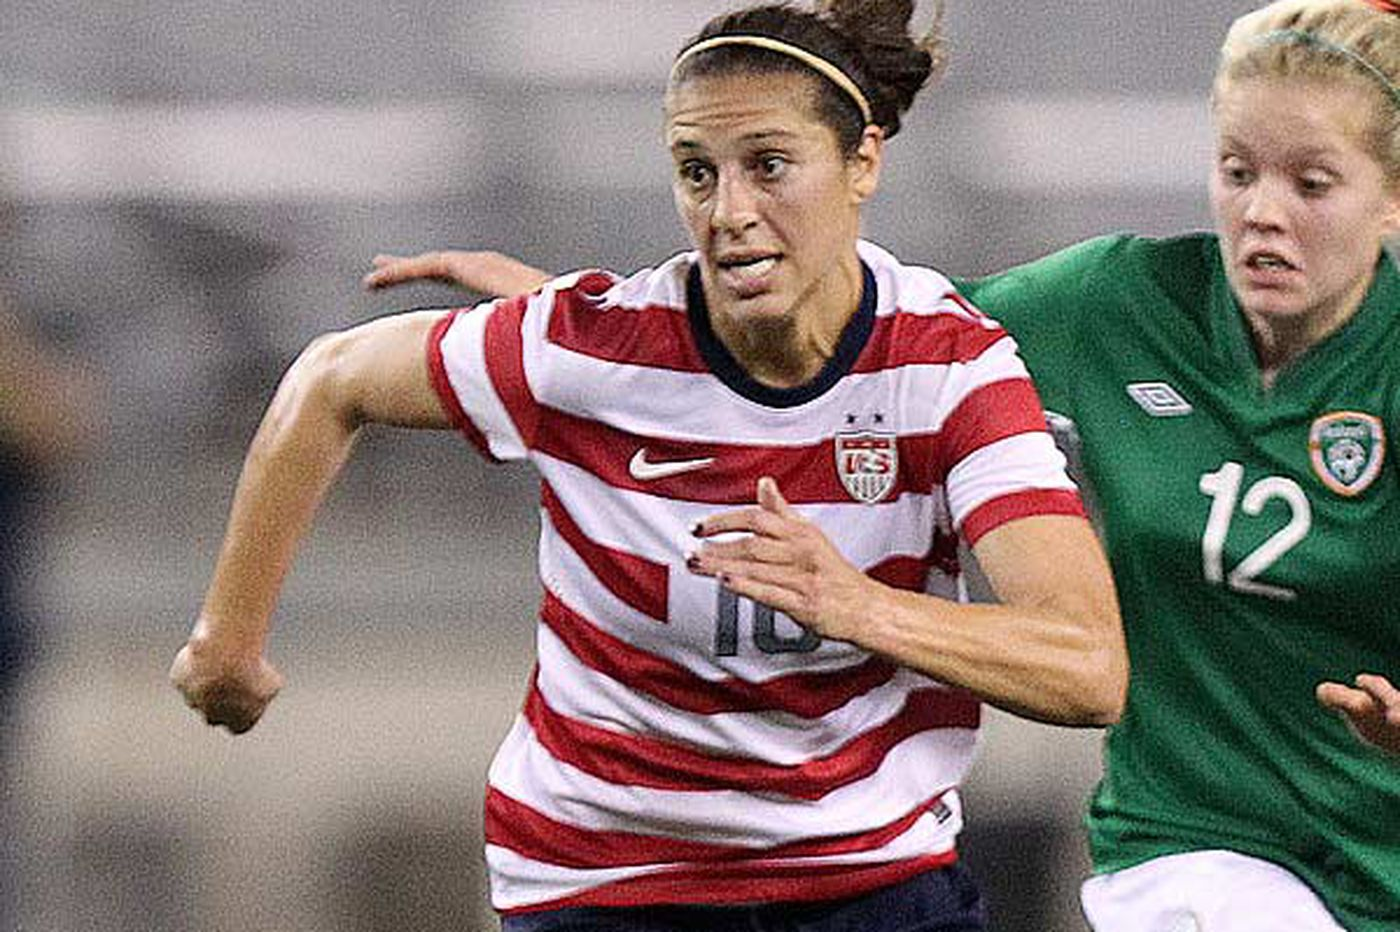 Delran's Olympic star Carli Lloyd cleared to join women's soccer league Flash